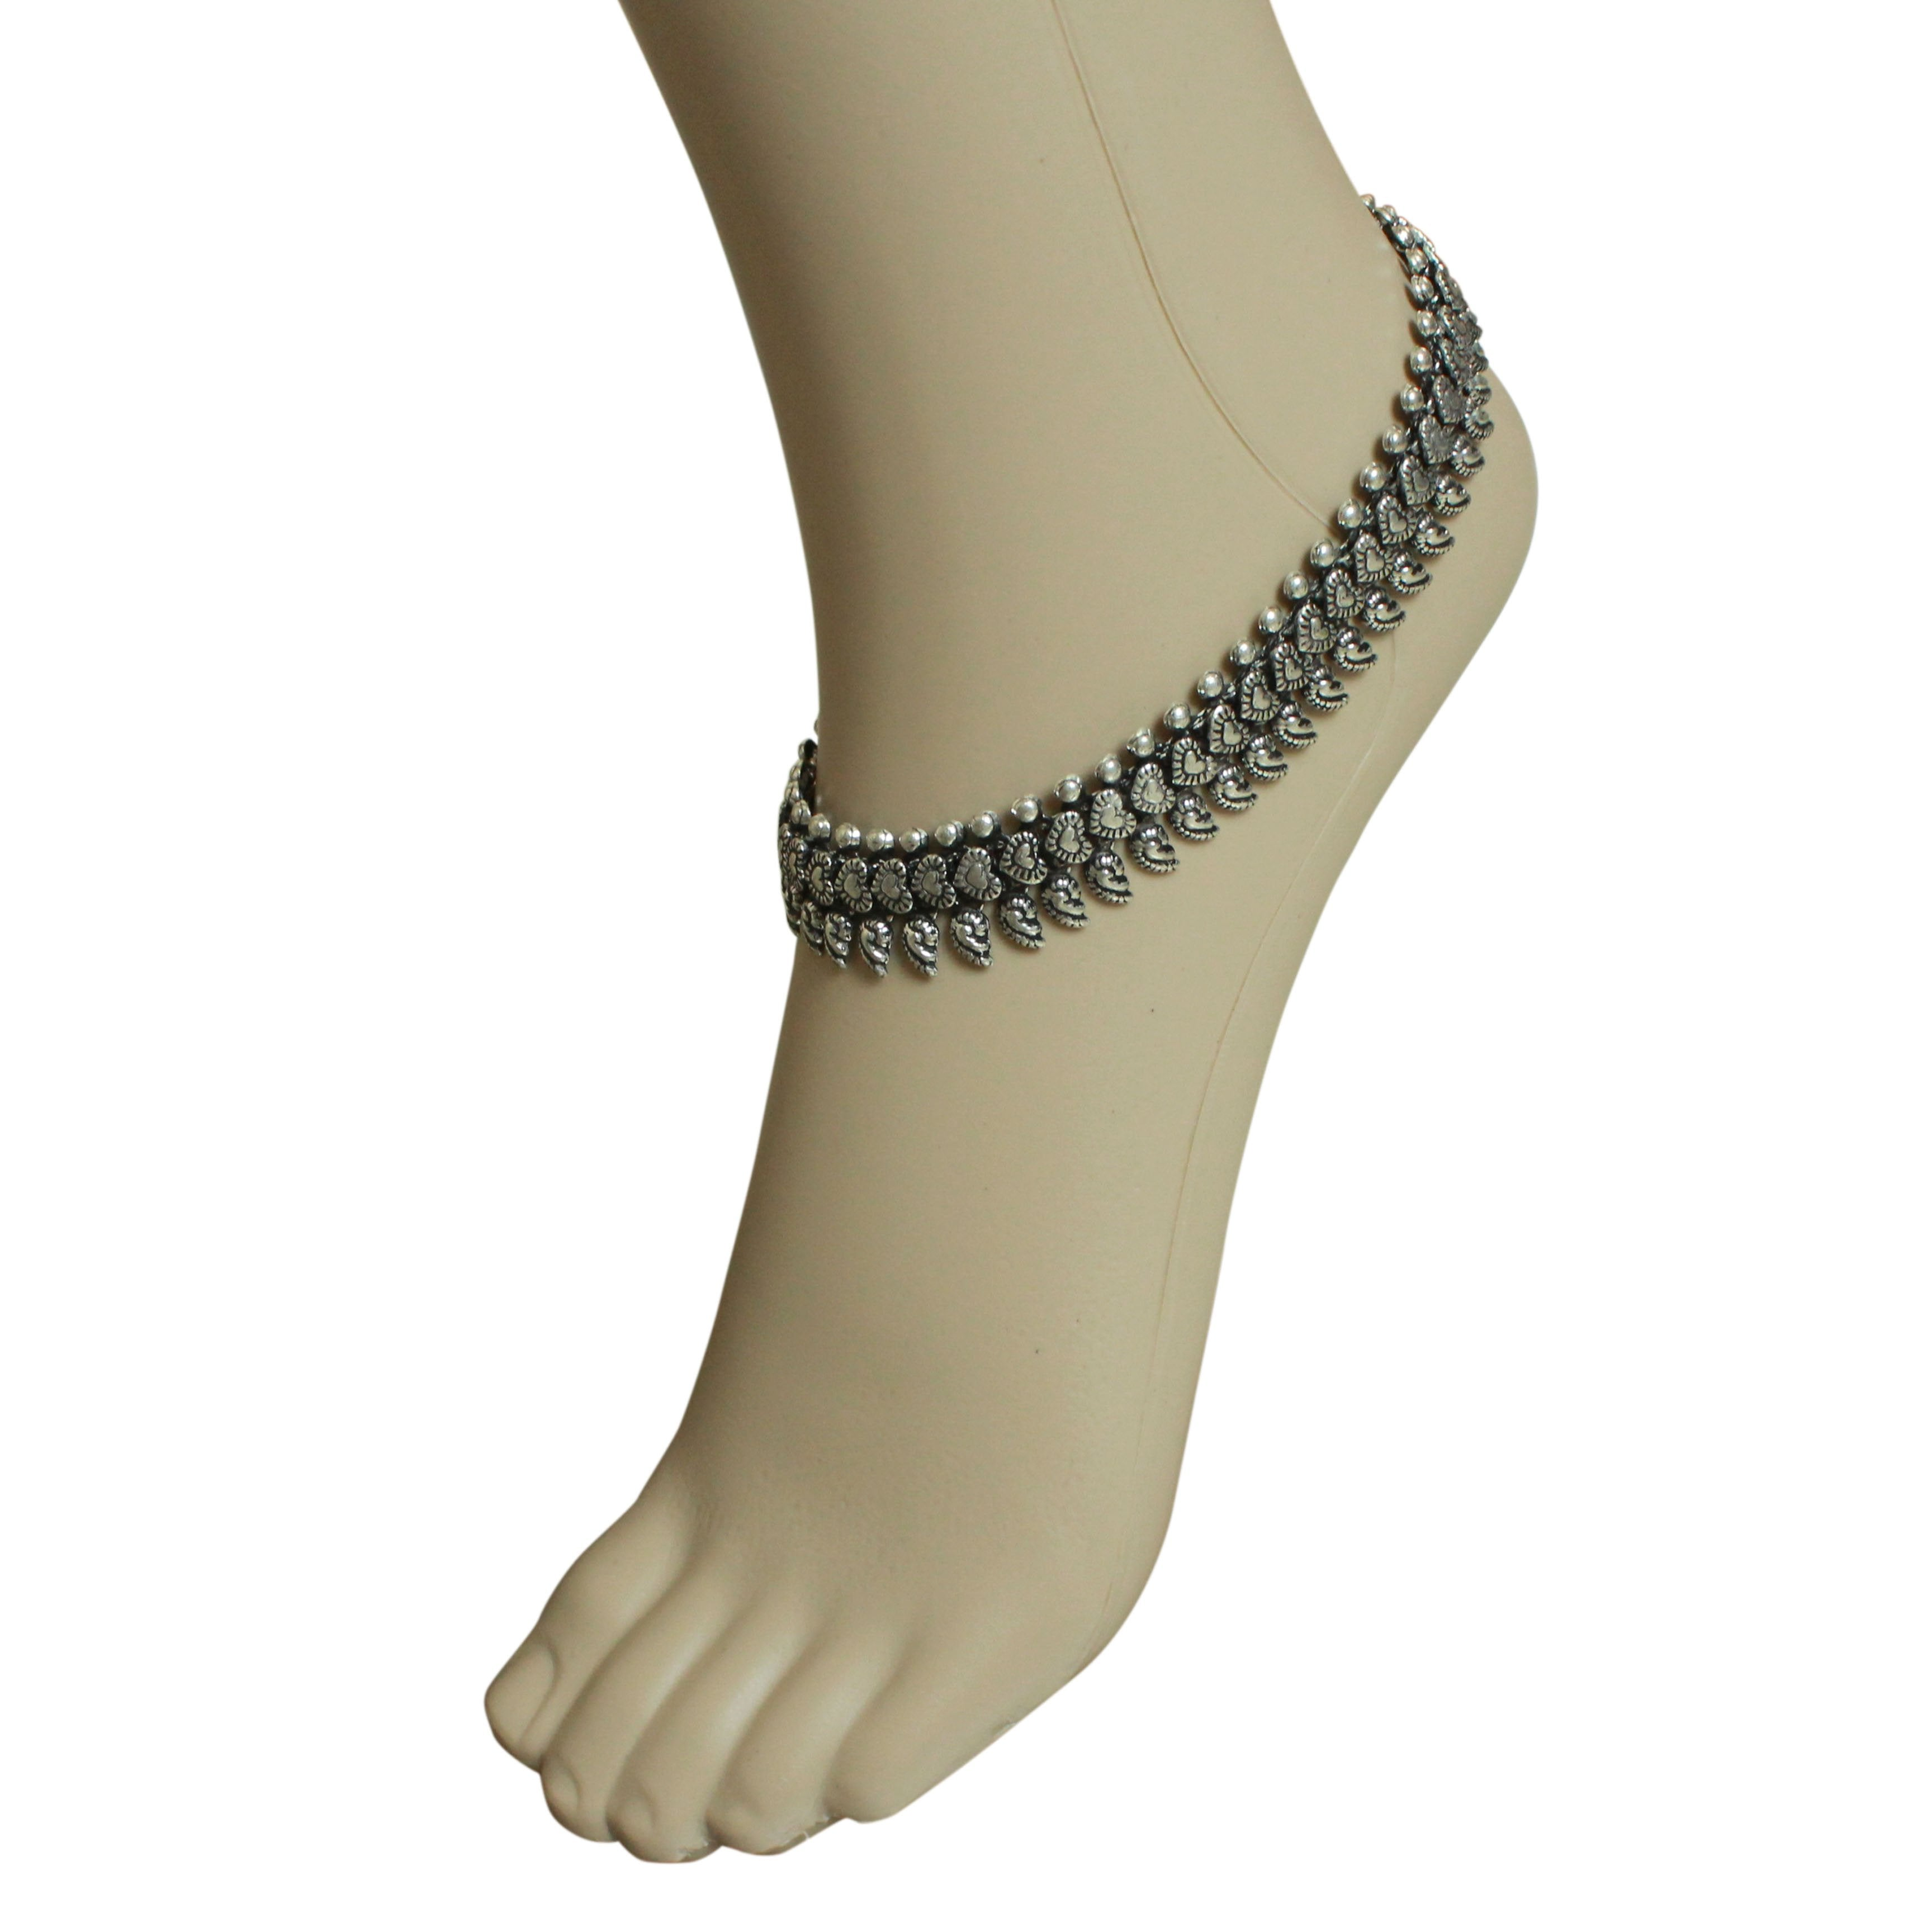 Oxidised German Silver Anklet